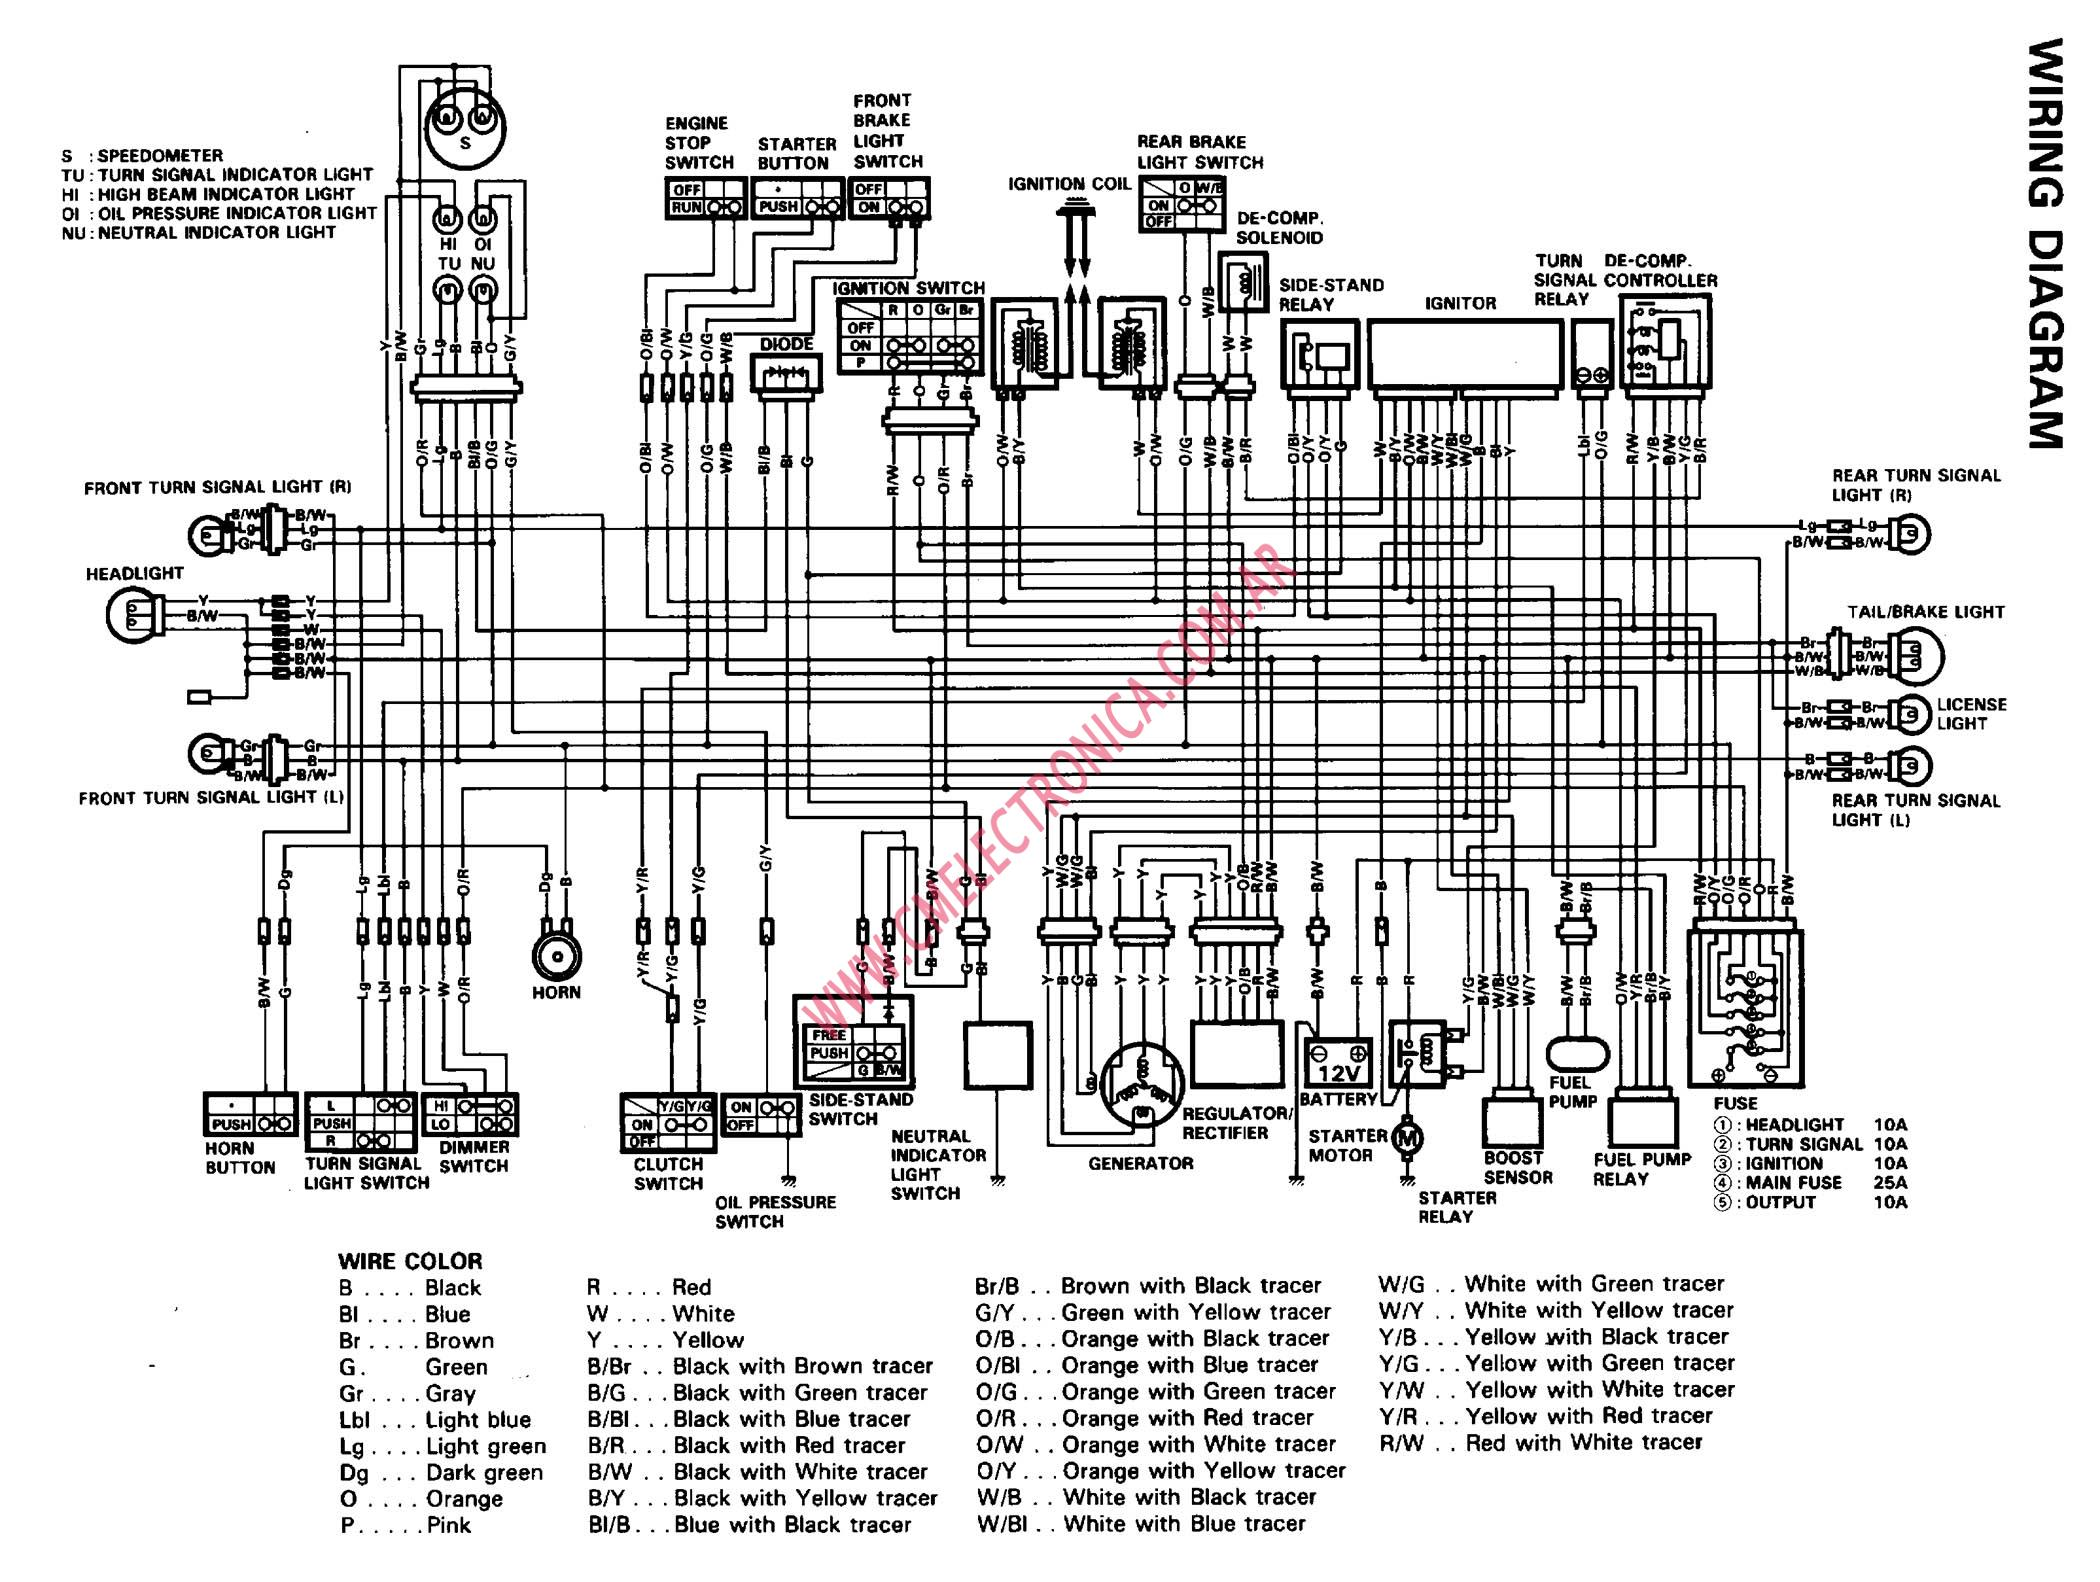 Wiring Diagram Vs800 Intruder Page 2 And Schematics 2001 Suzuki 800 Diagrams 1400 35 1987 Vs700 1986